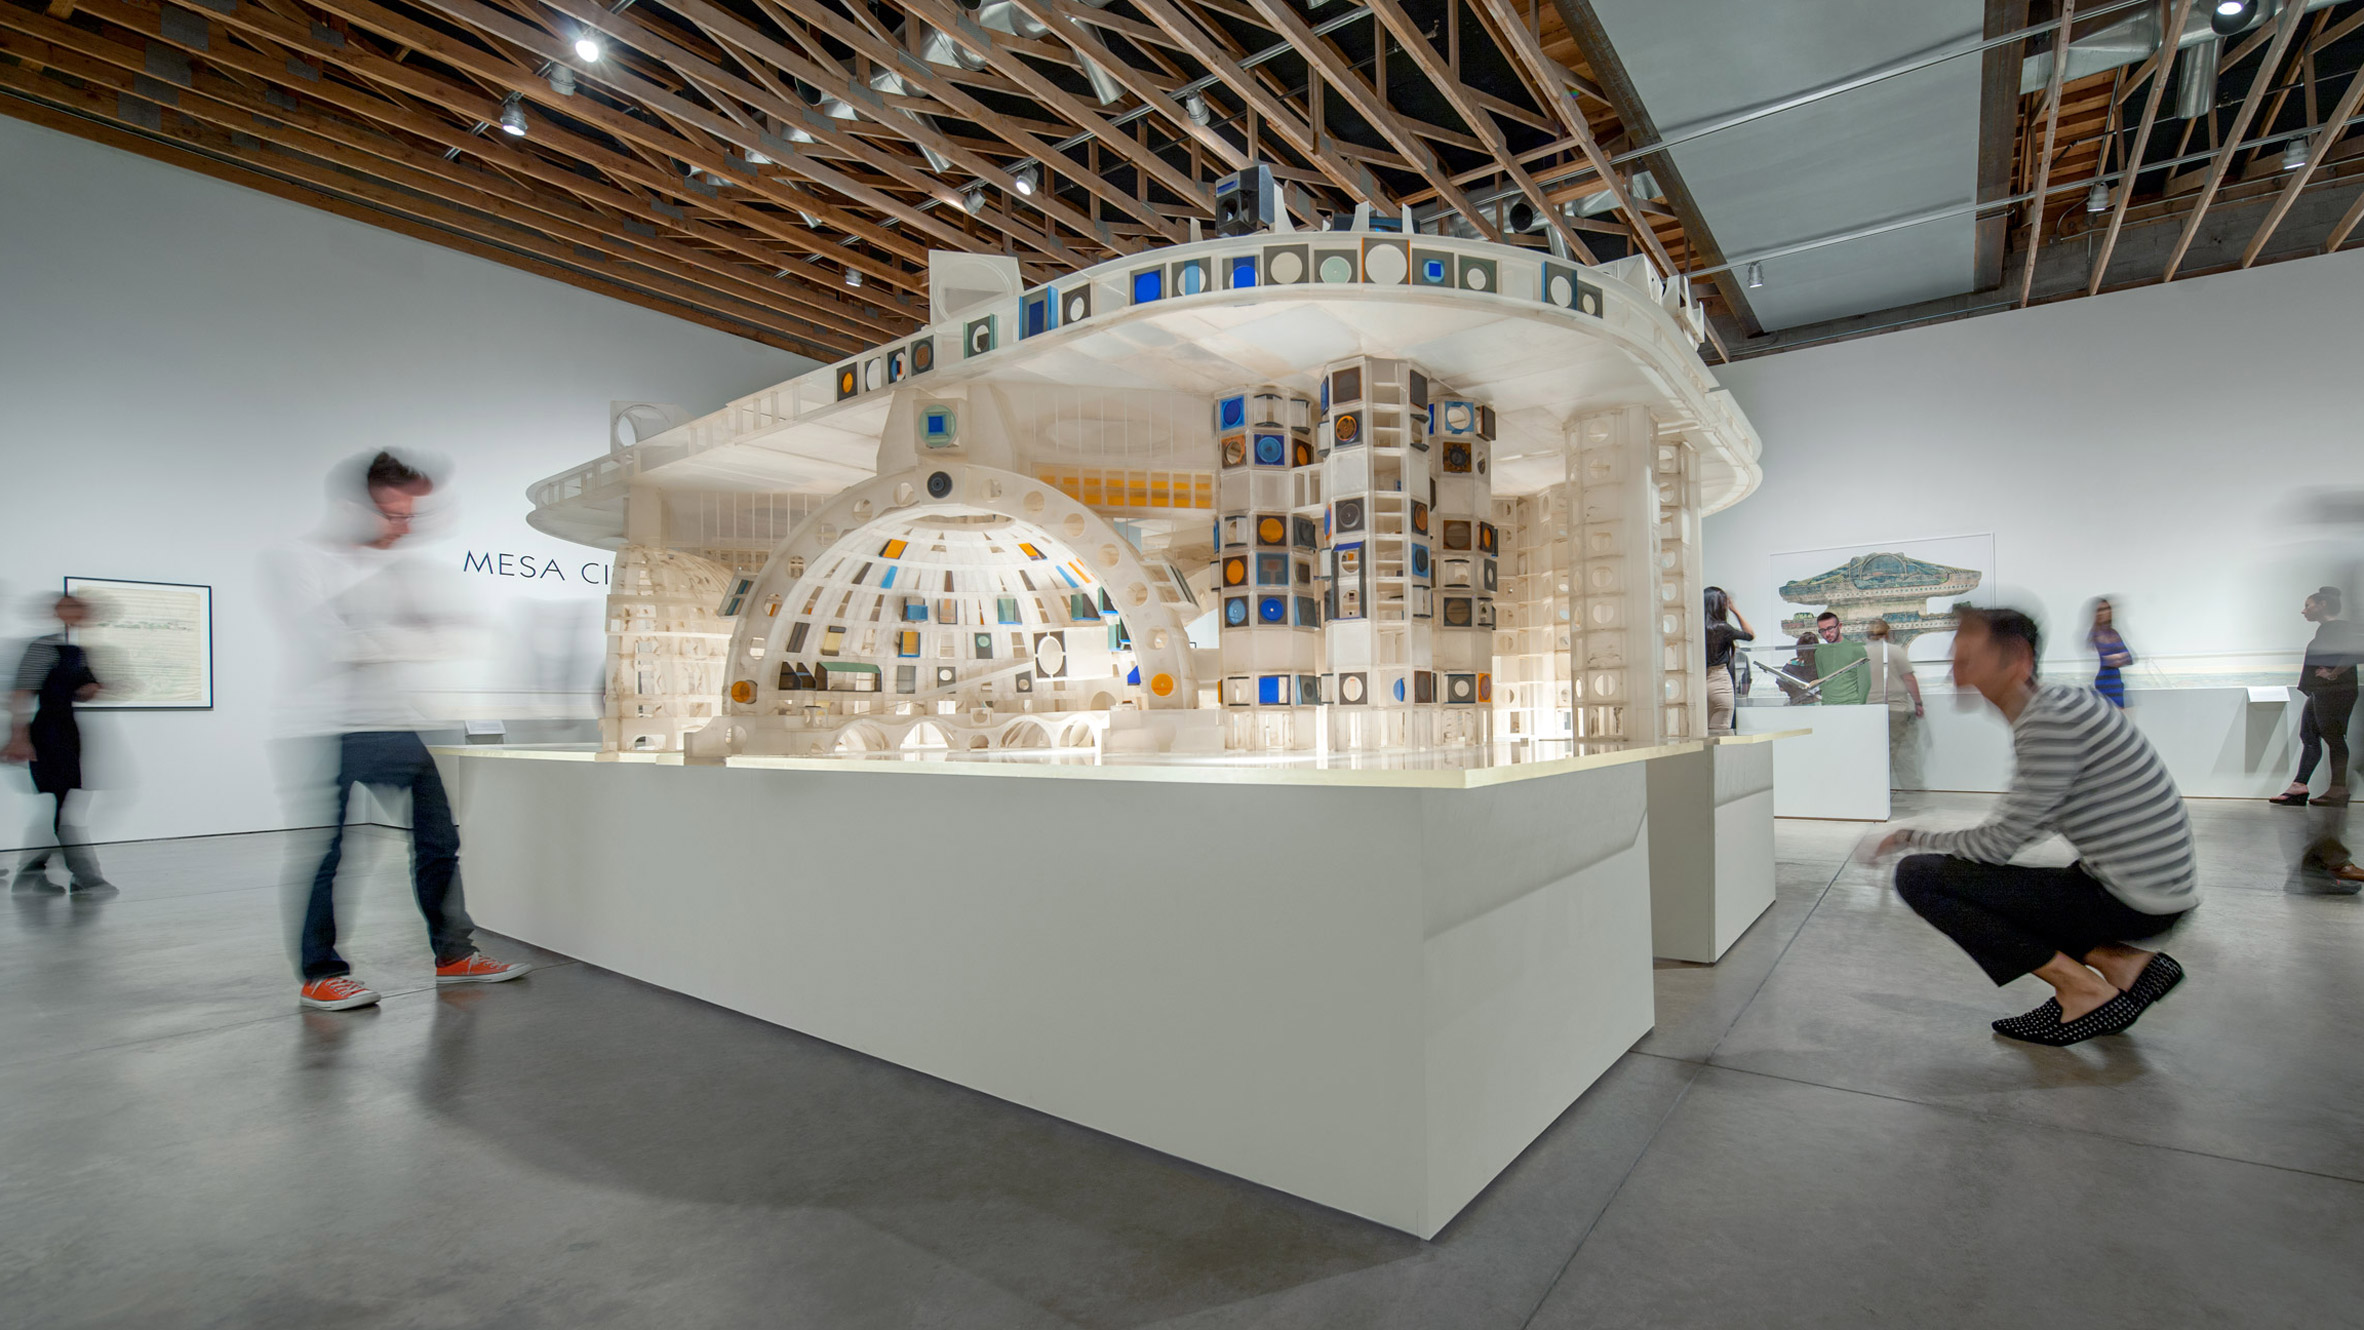 Paolo Soleri exhibition at SMoCA celebrates the architect's visionary ideas and legacy